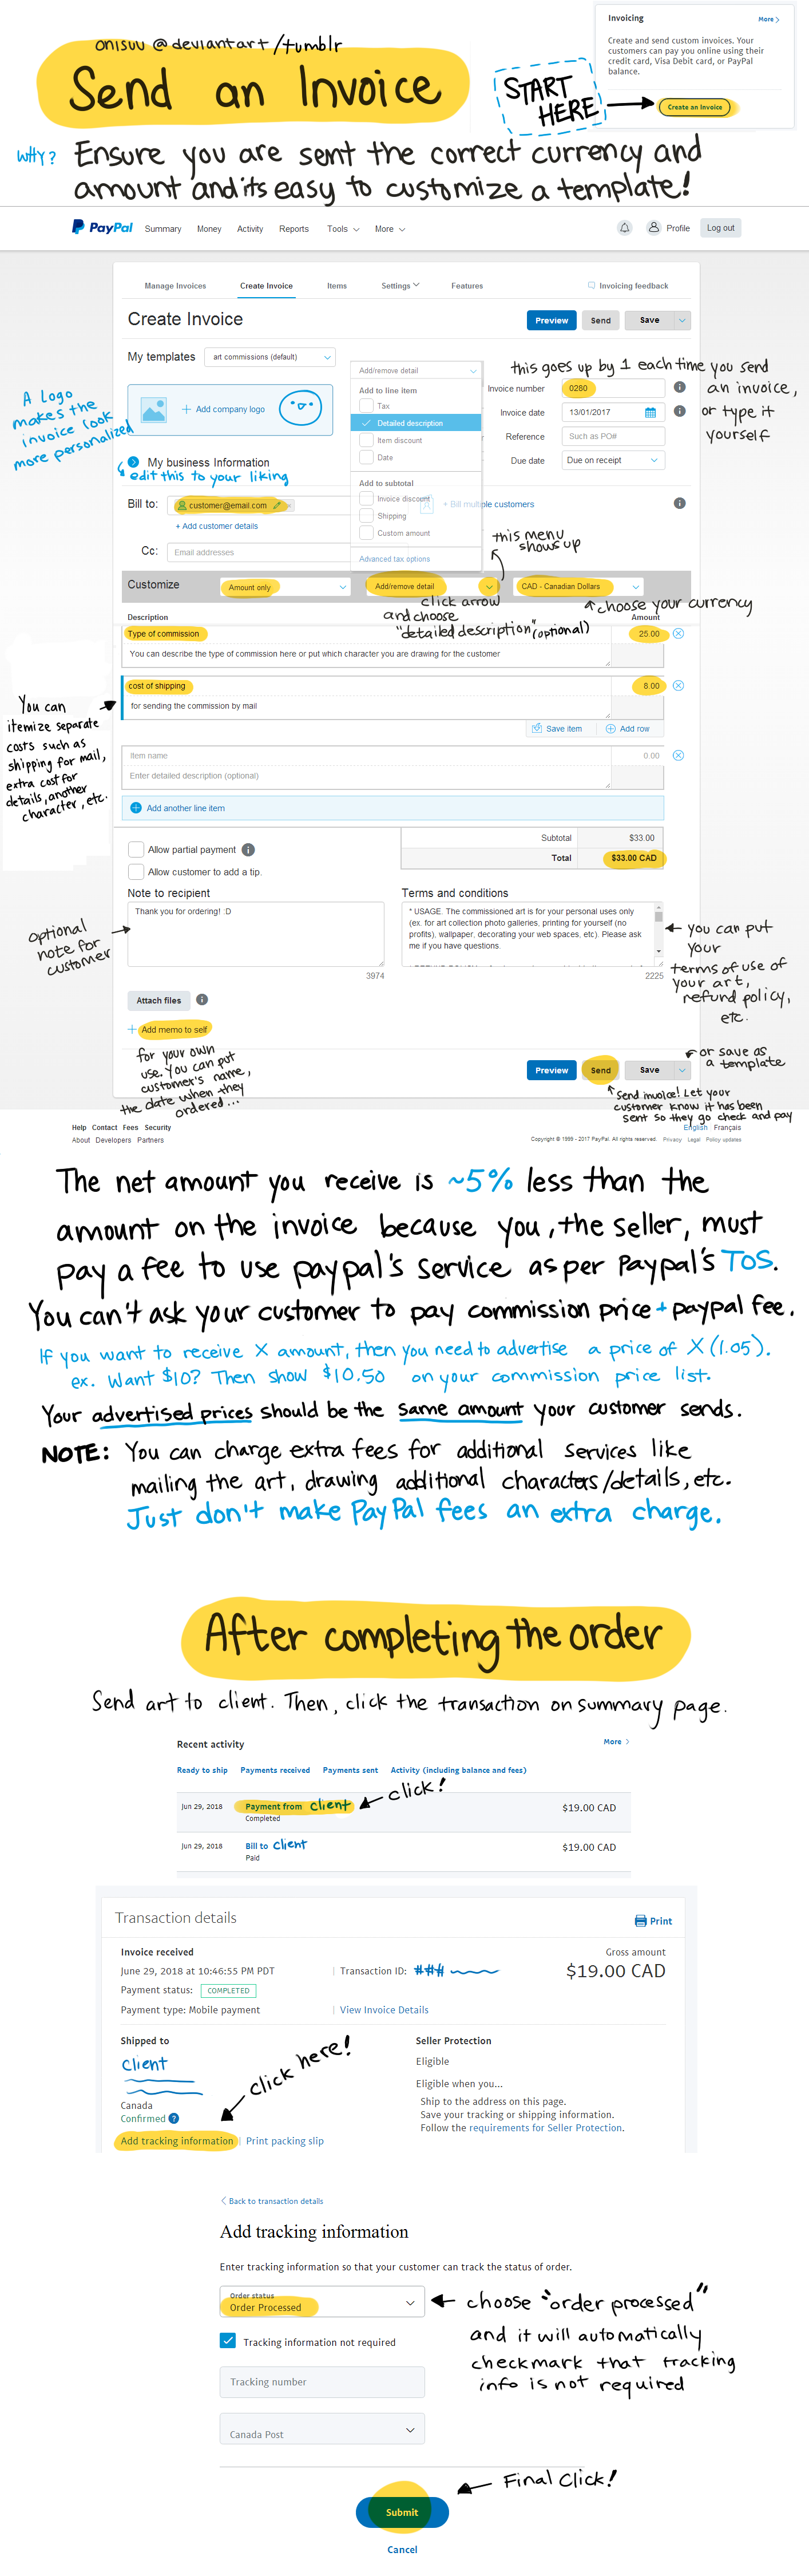 Invoice Guide for PayPal by onisuu